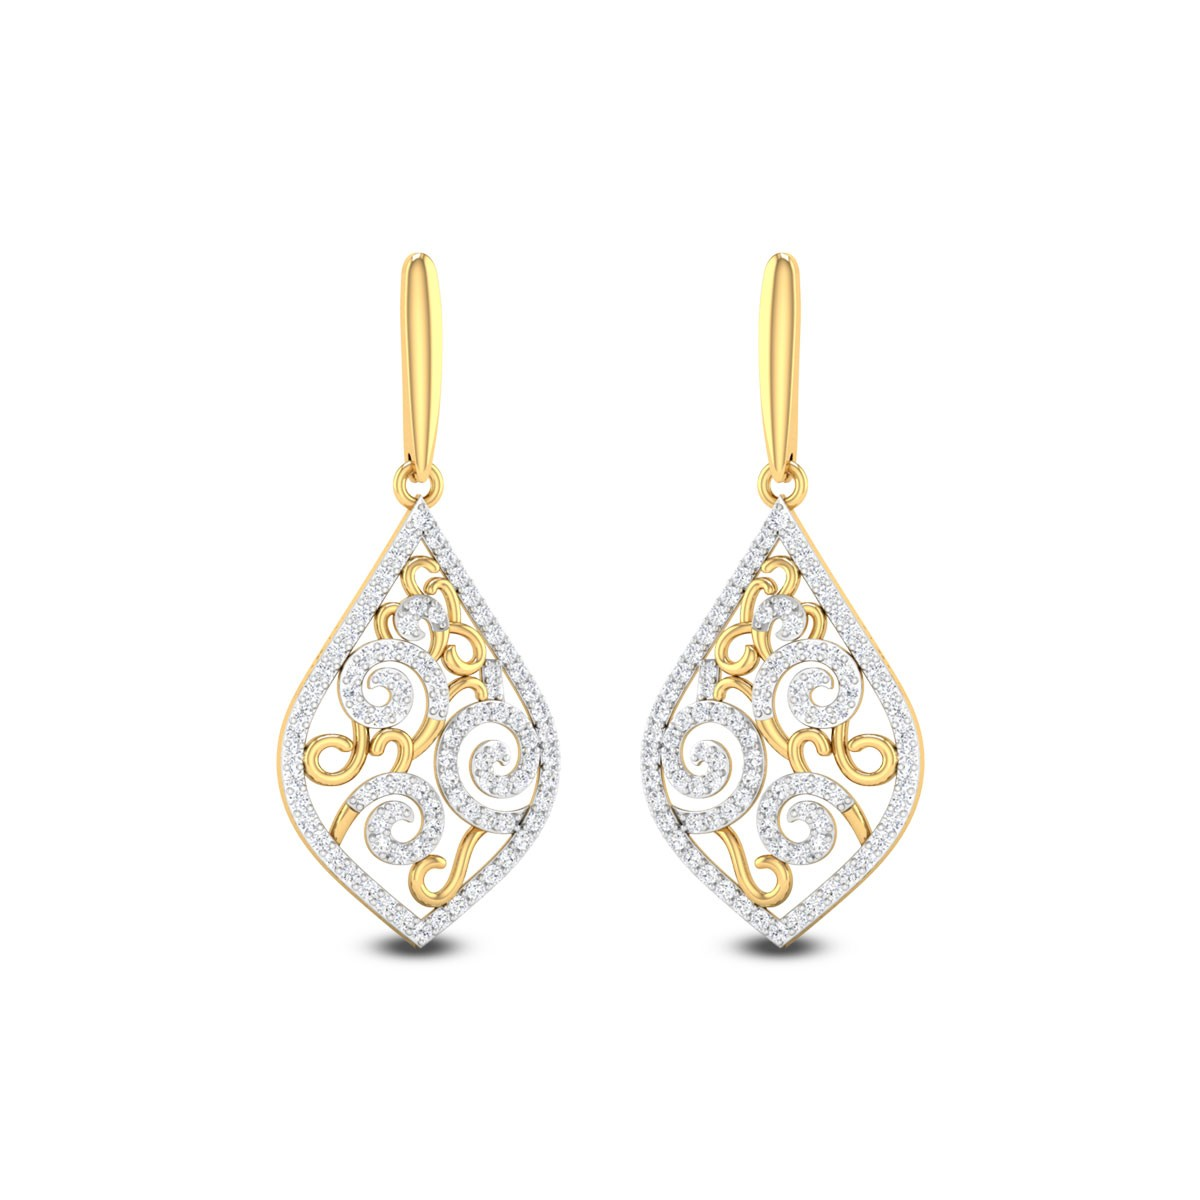 Florencia Diamond Earrings